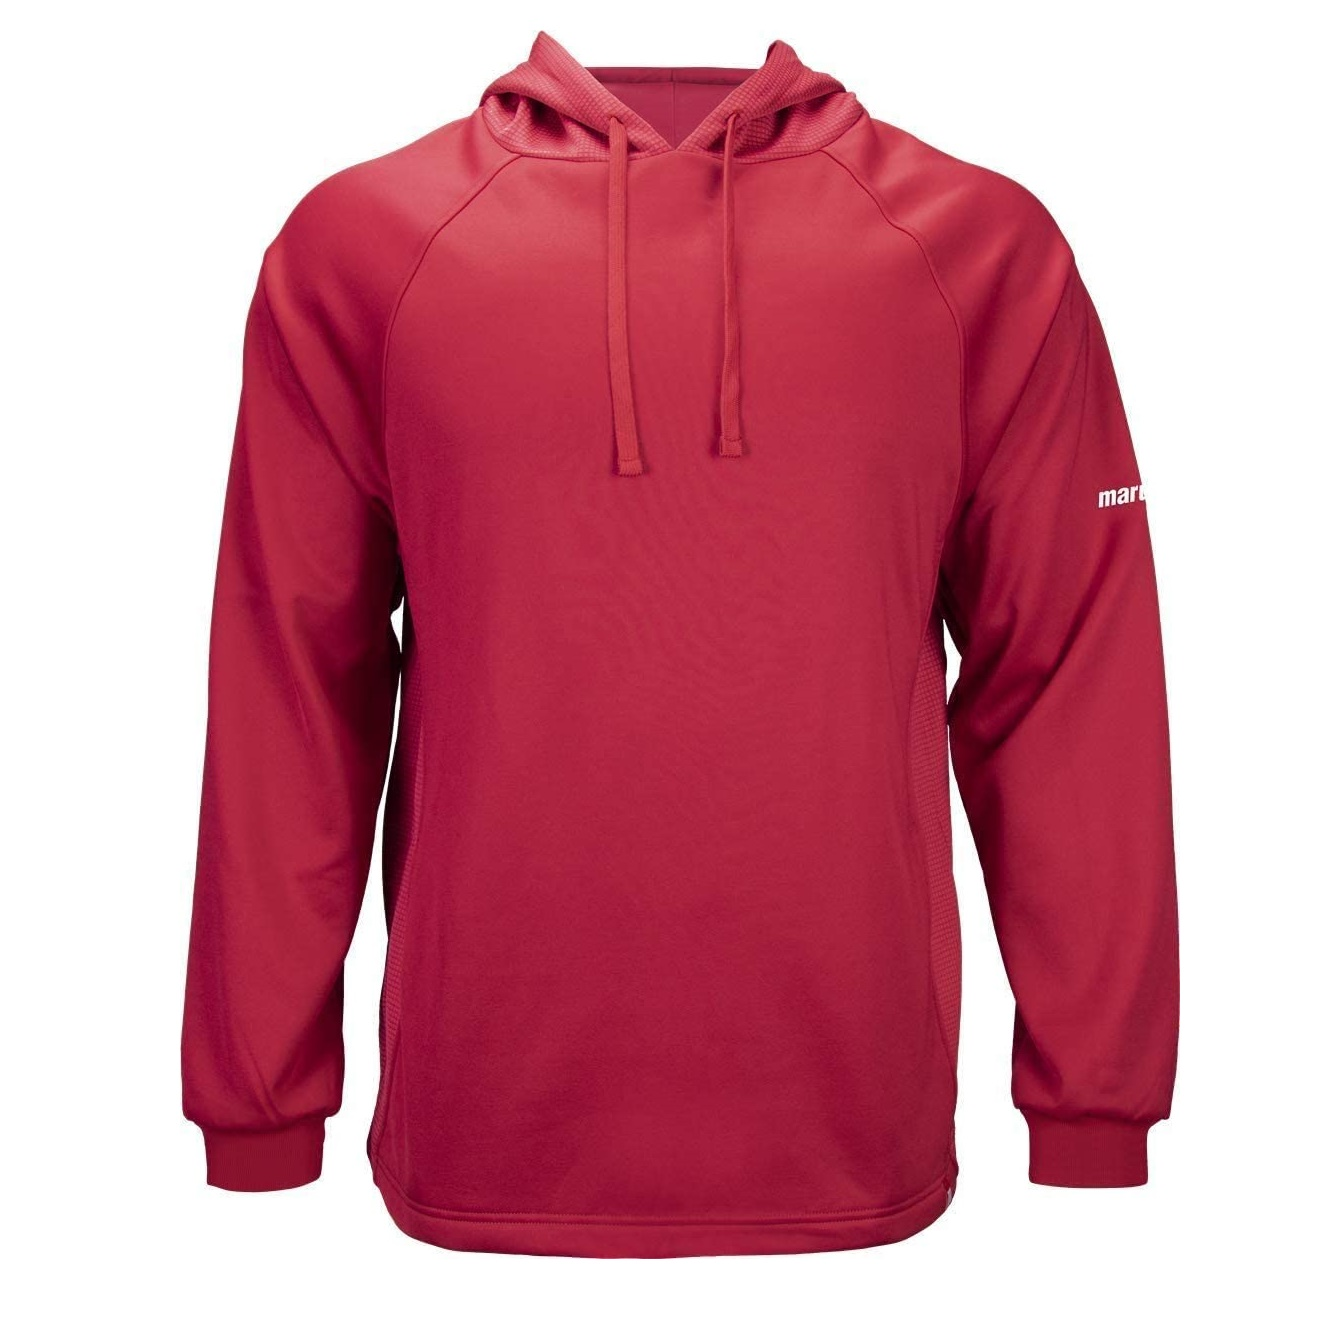 marucci-sports-boys-warm-up-tech-fleece-matflhtc-red-youth-medium-baseball-hoodie MATFLHTC-R-YM   Marucci Sports - Warm-Up Tech Fleece MATFLHTCY Baseball Hoodie. As a